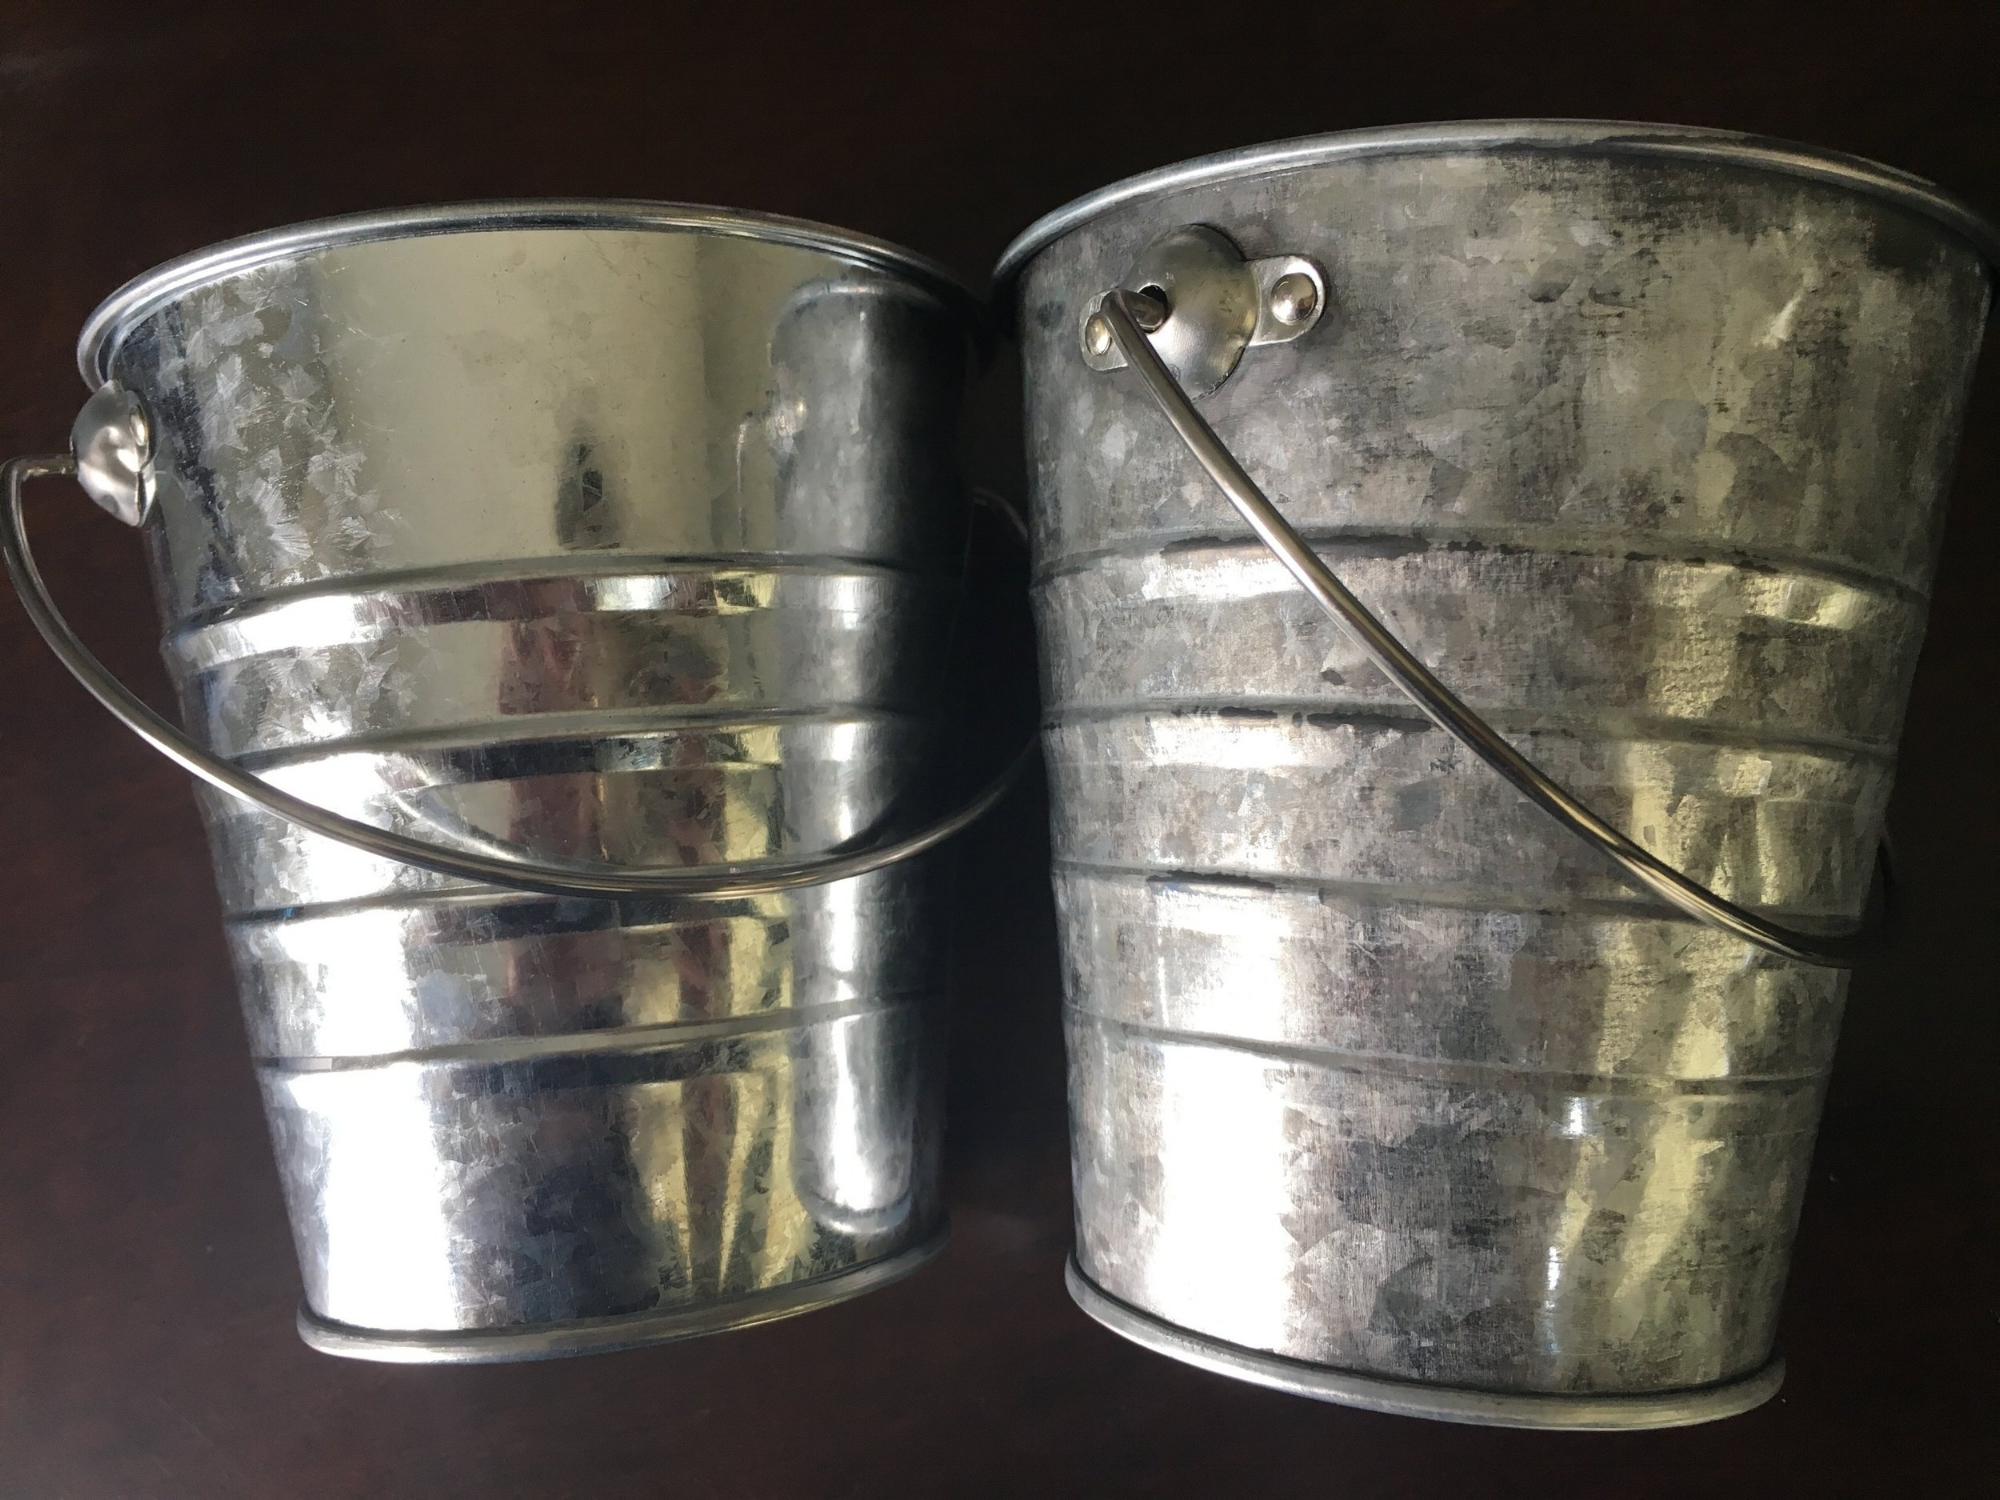 Notice the left side is shiny with my reflection. the right is duller with some browning at the top edge of the tin